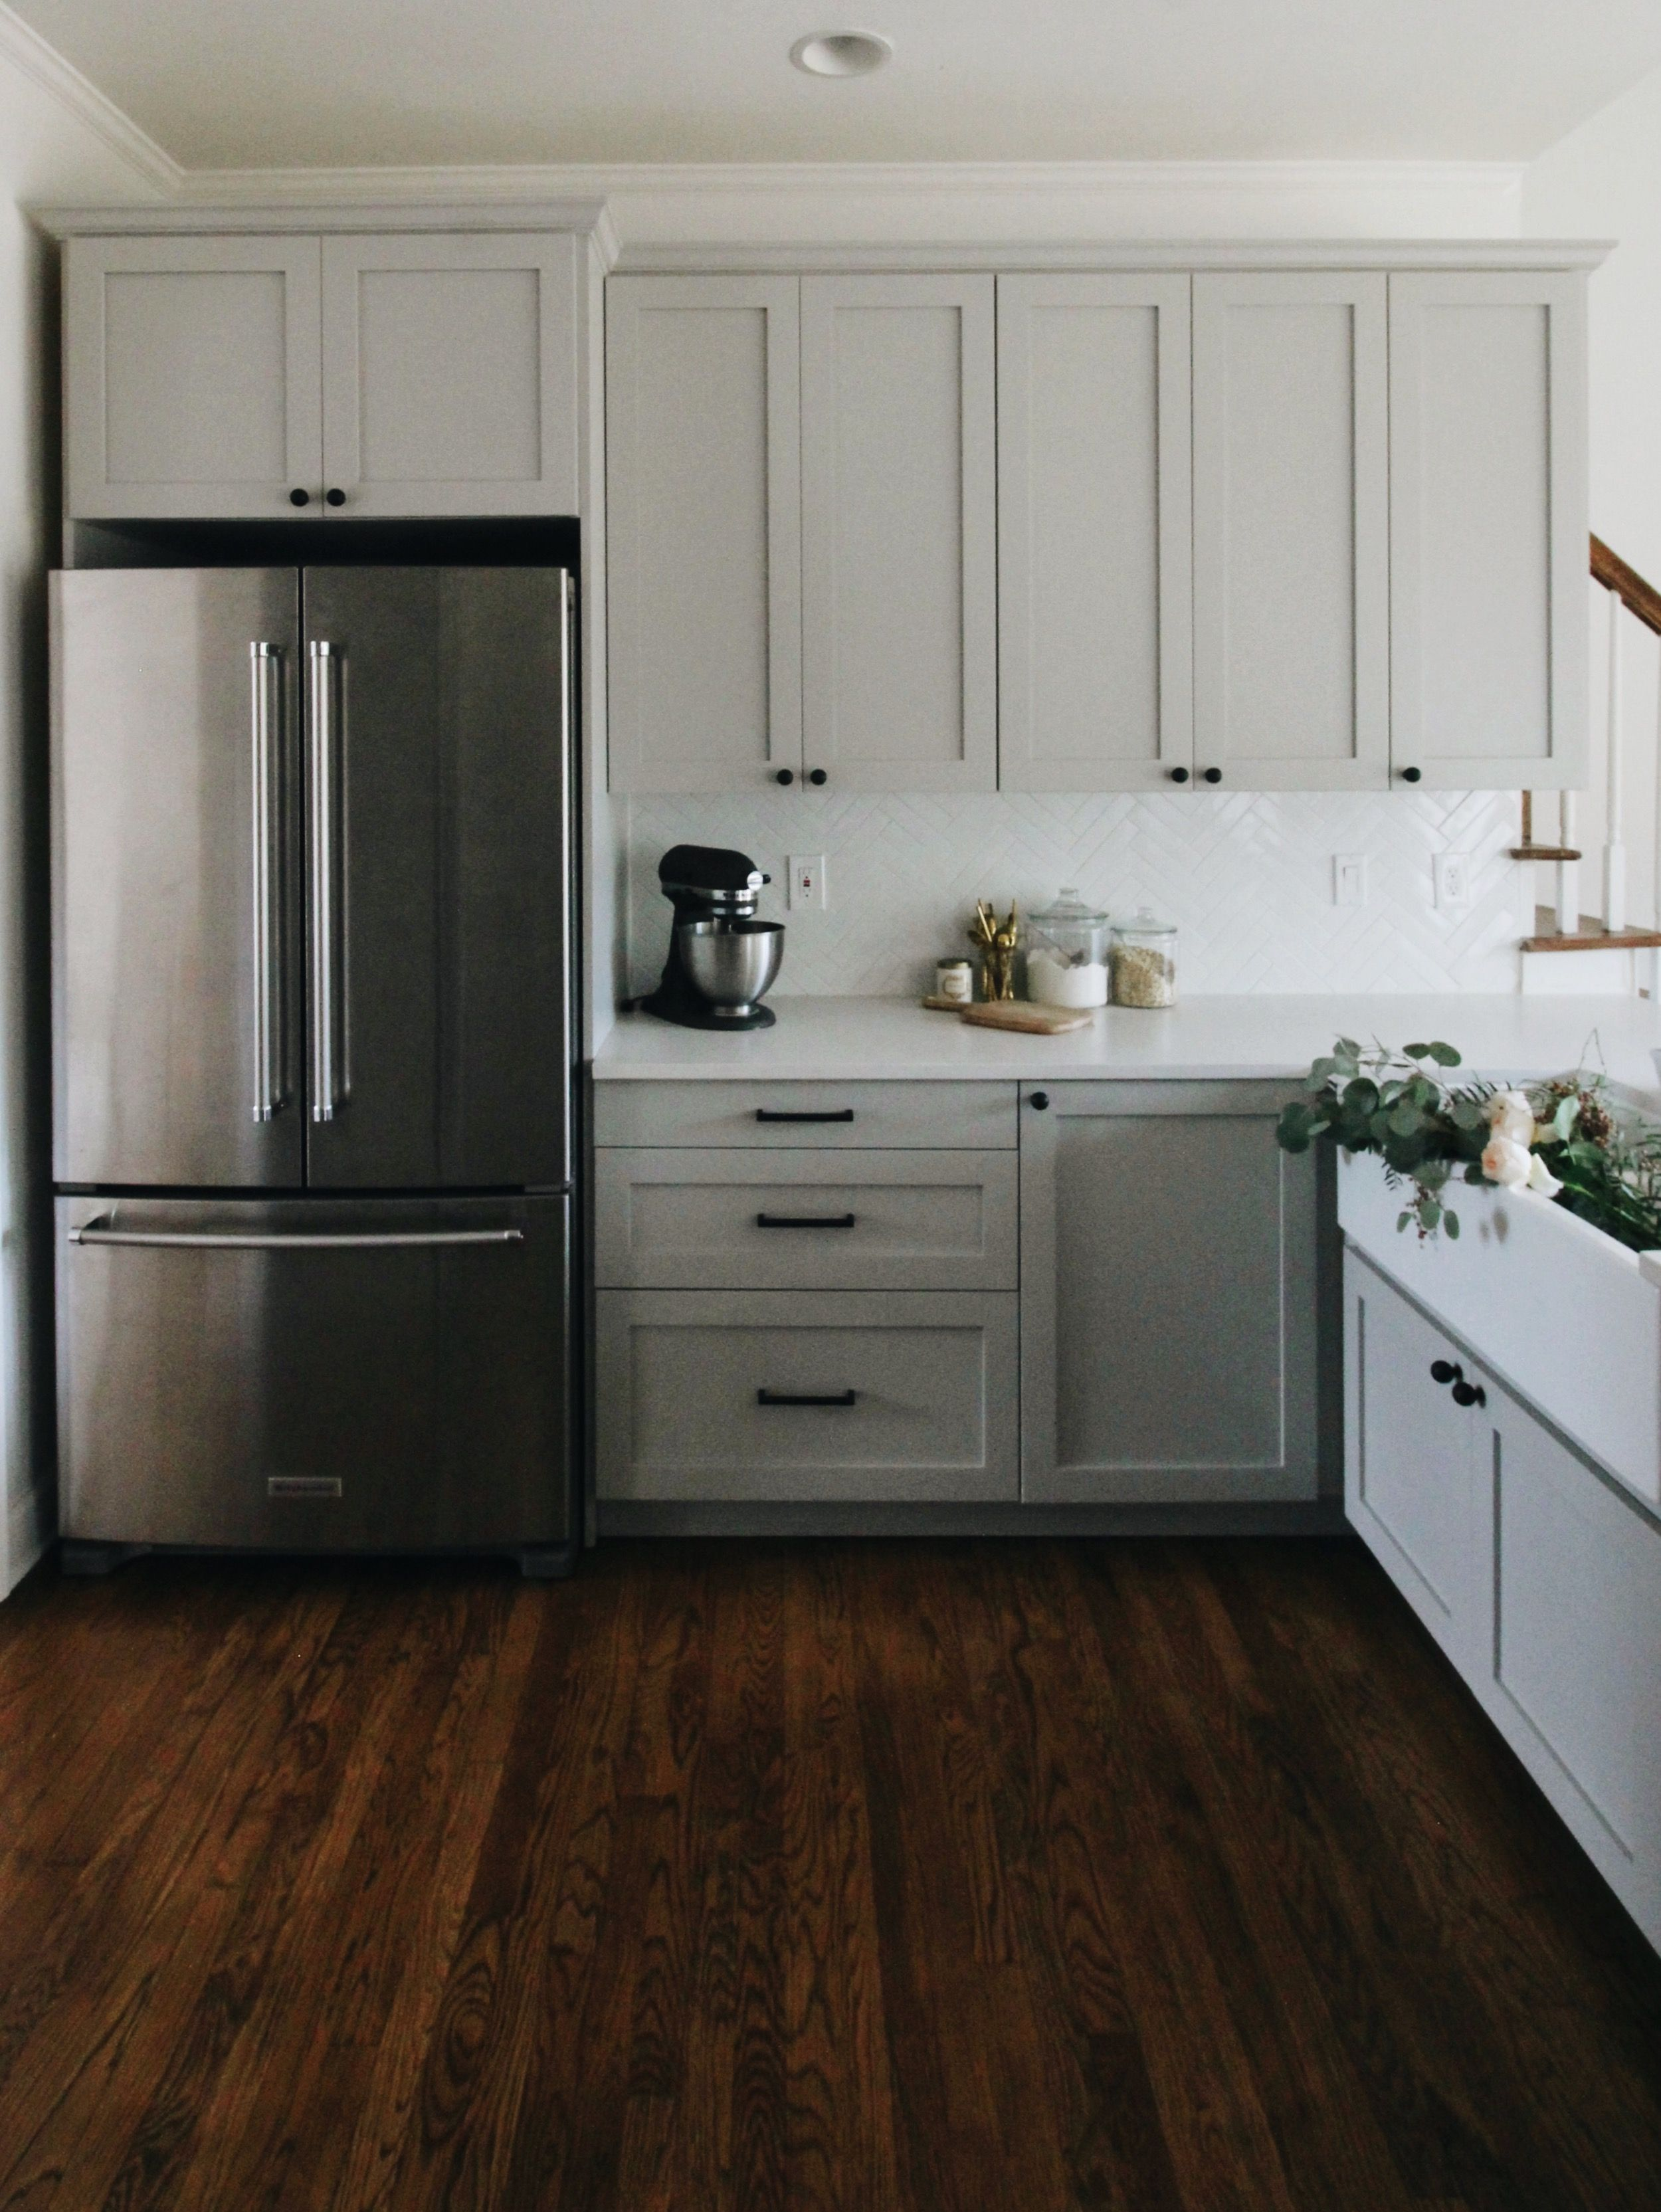 ikea shaker kitchen cabinets painting cabinet ideas our tour ash new house pinterest cuisines de